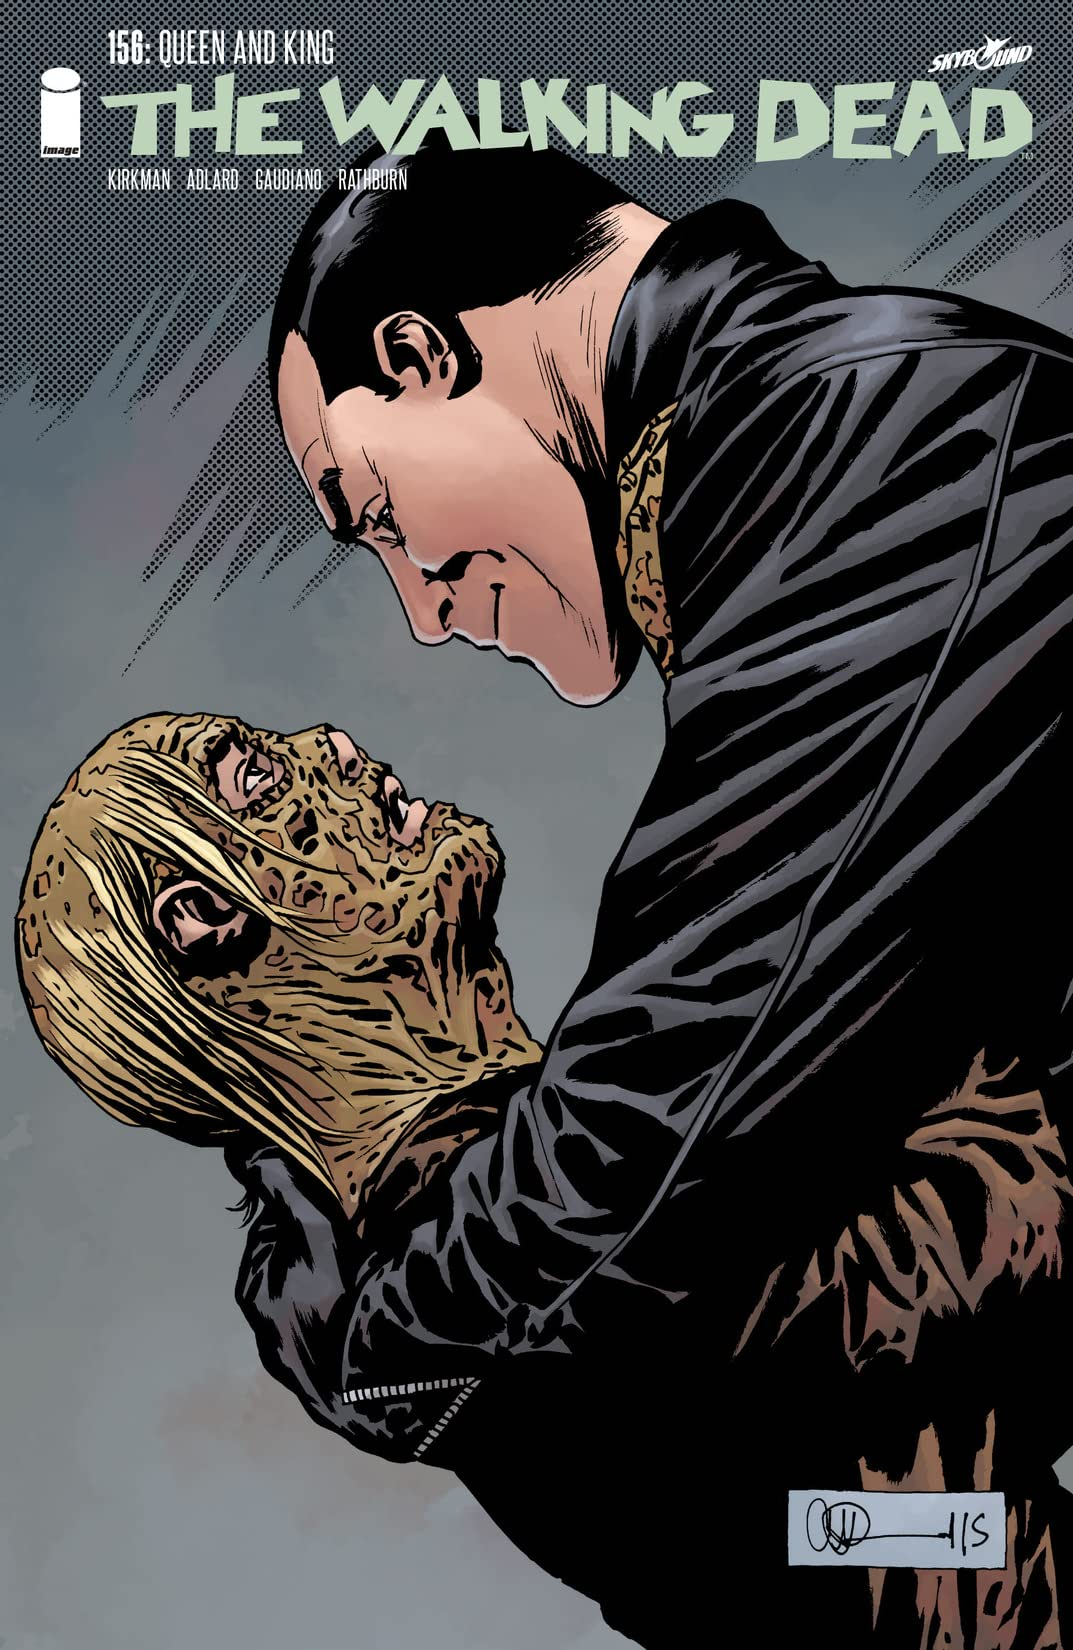 The Walking Dead No.156